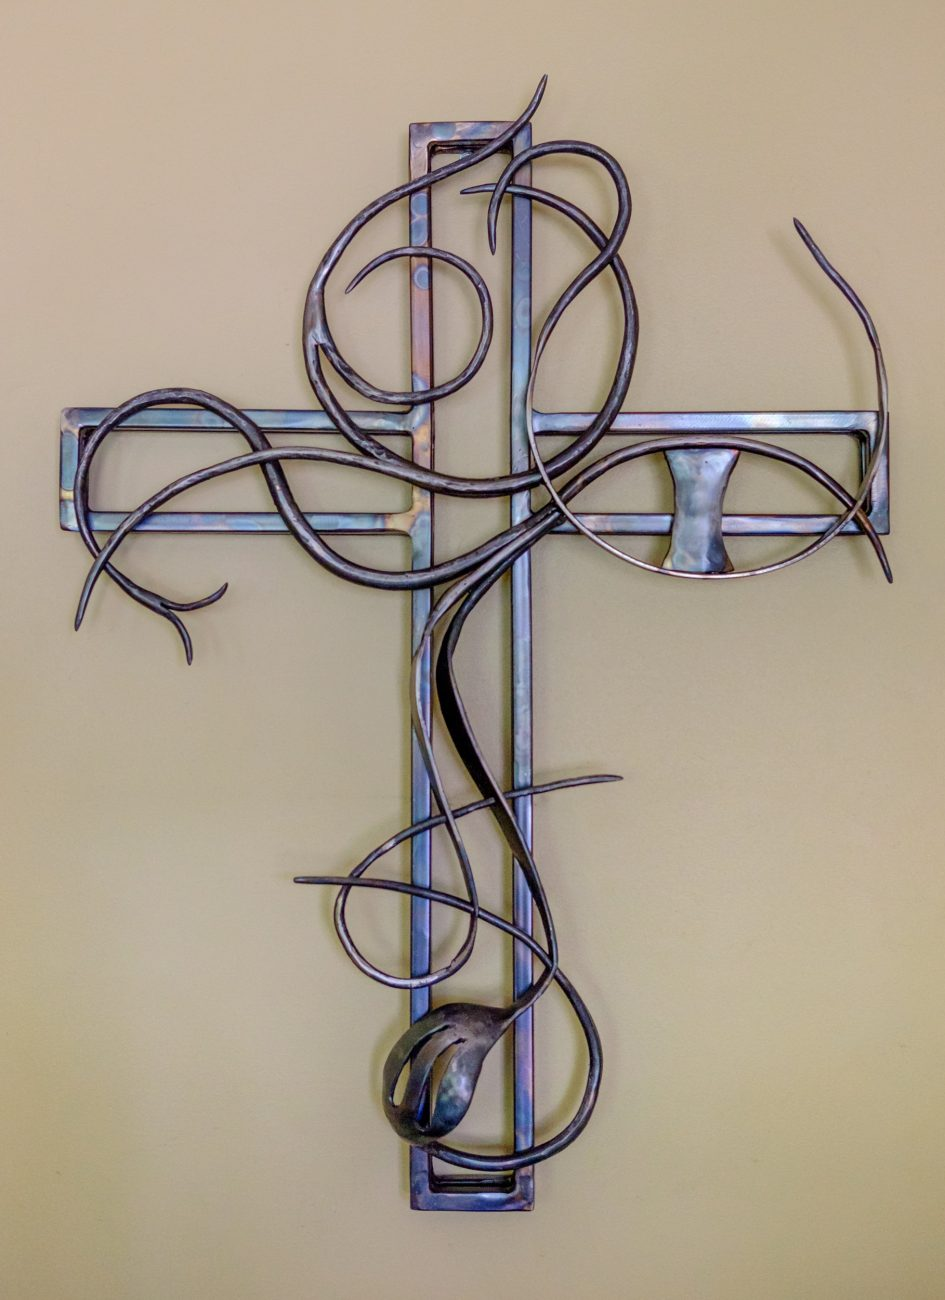 photograph of a welded metal cross outline with organic vines in mild steel